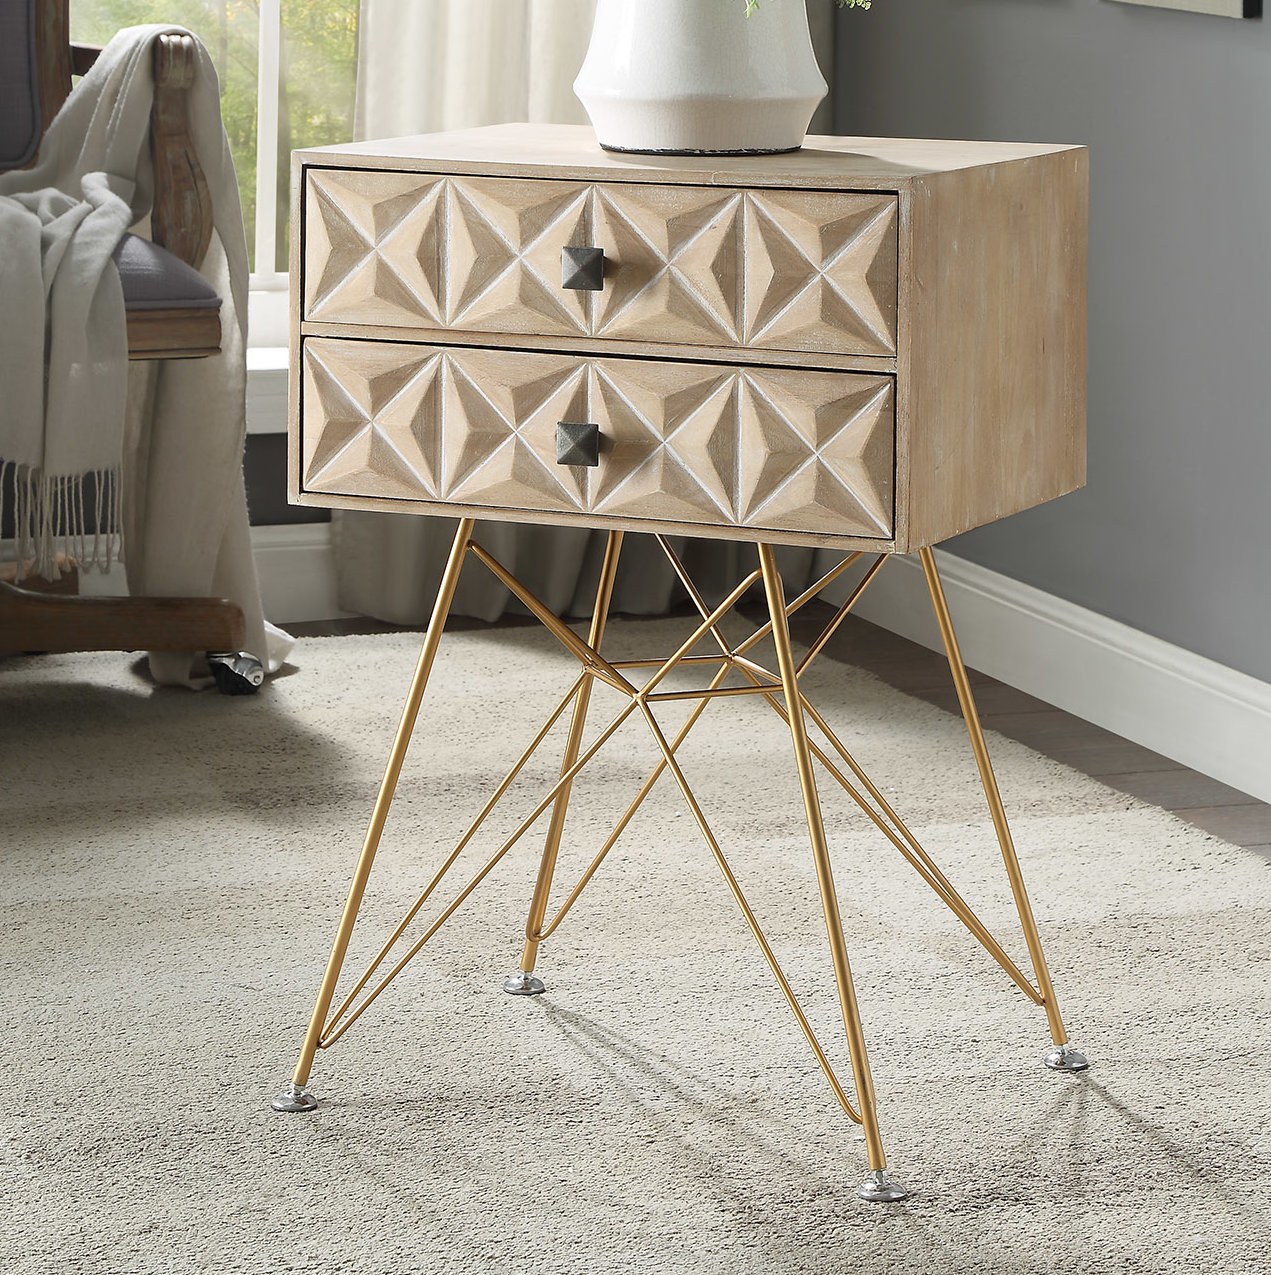 bungalow rose bandit two drawer accent table metal with drawers pier candles modern lamp shades pottery barn rattan coffee square marble dining chairs home and decor goods tables